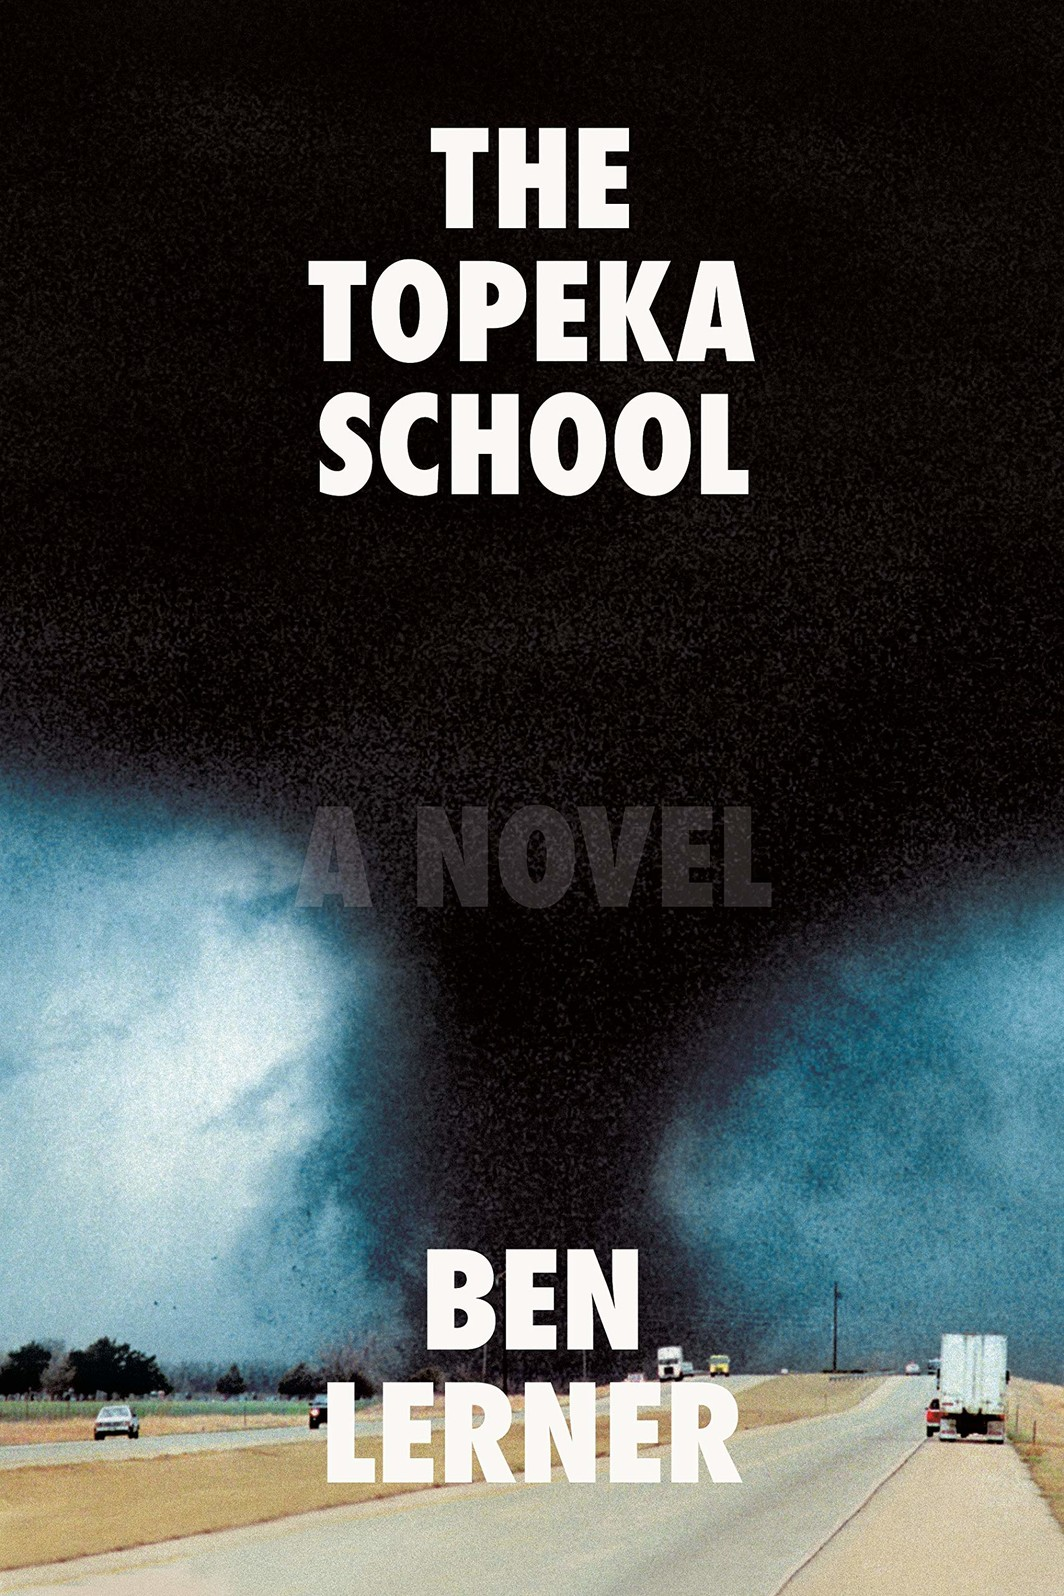 The cover of The Topeka School